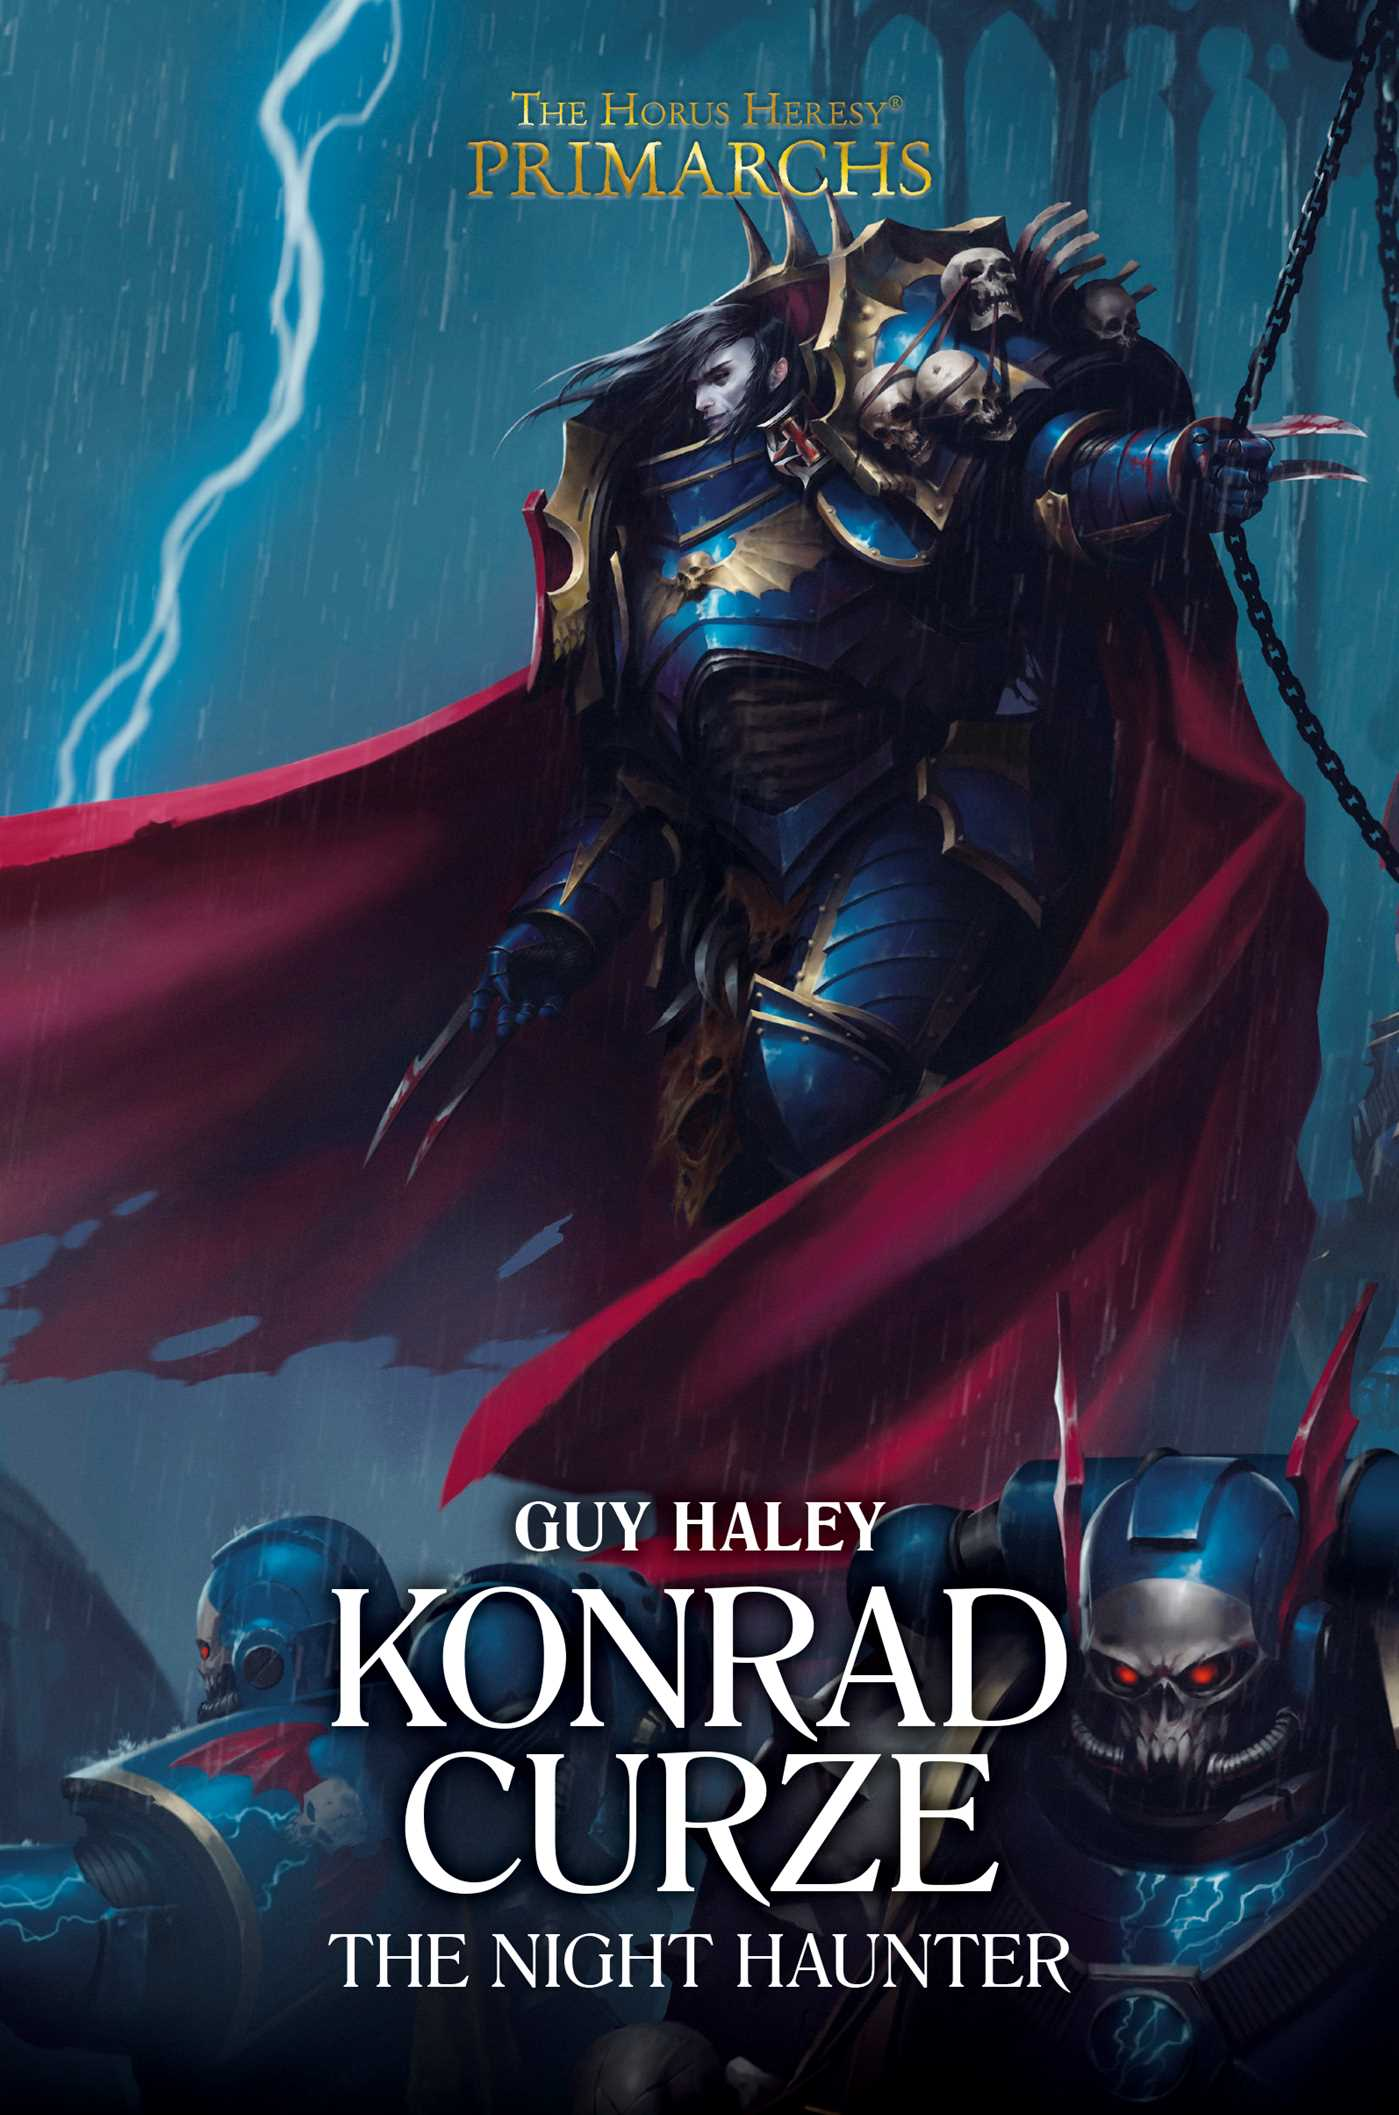 Konrad Curze: The Night Haunter | Book by Guy Haley | Official